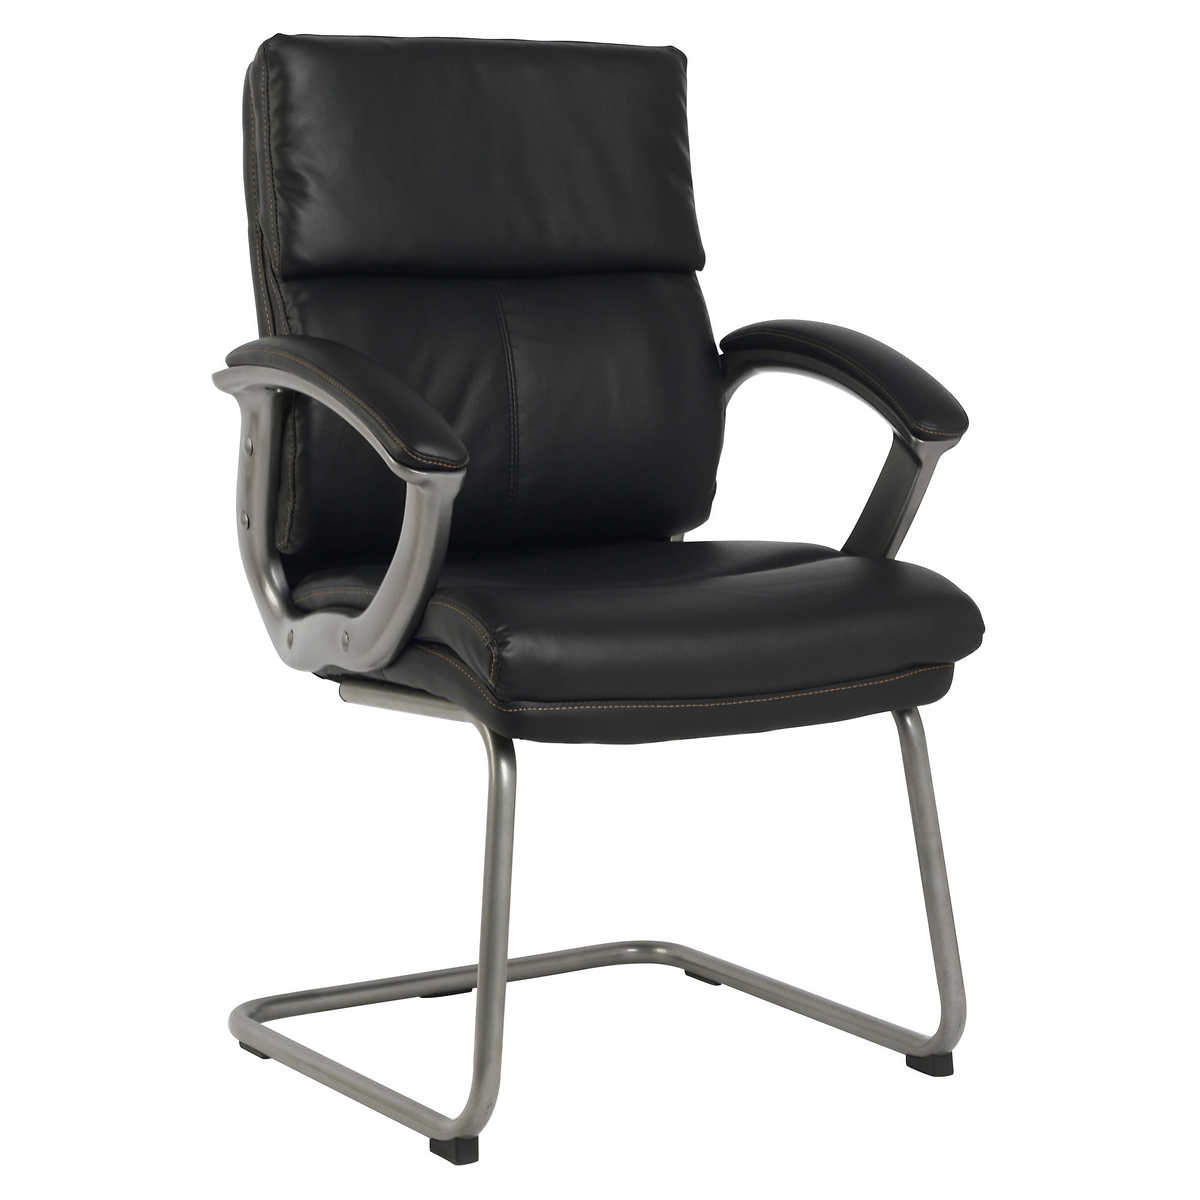 office chairs  costco - tygerclaw modern high back bonded leather office chair